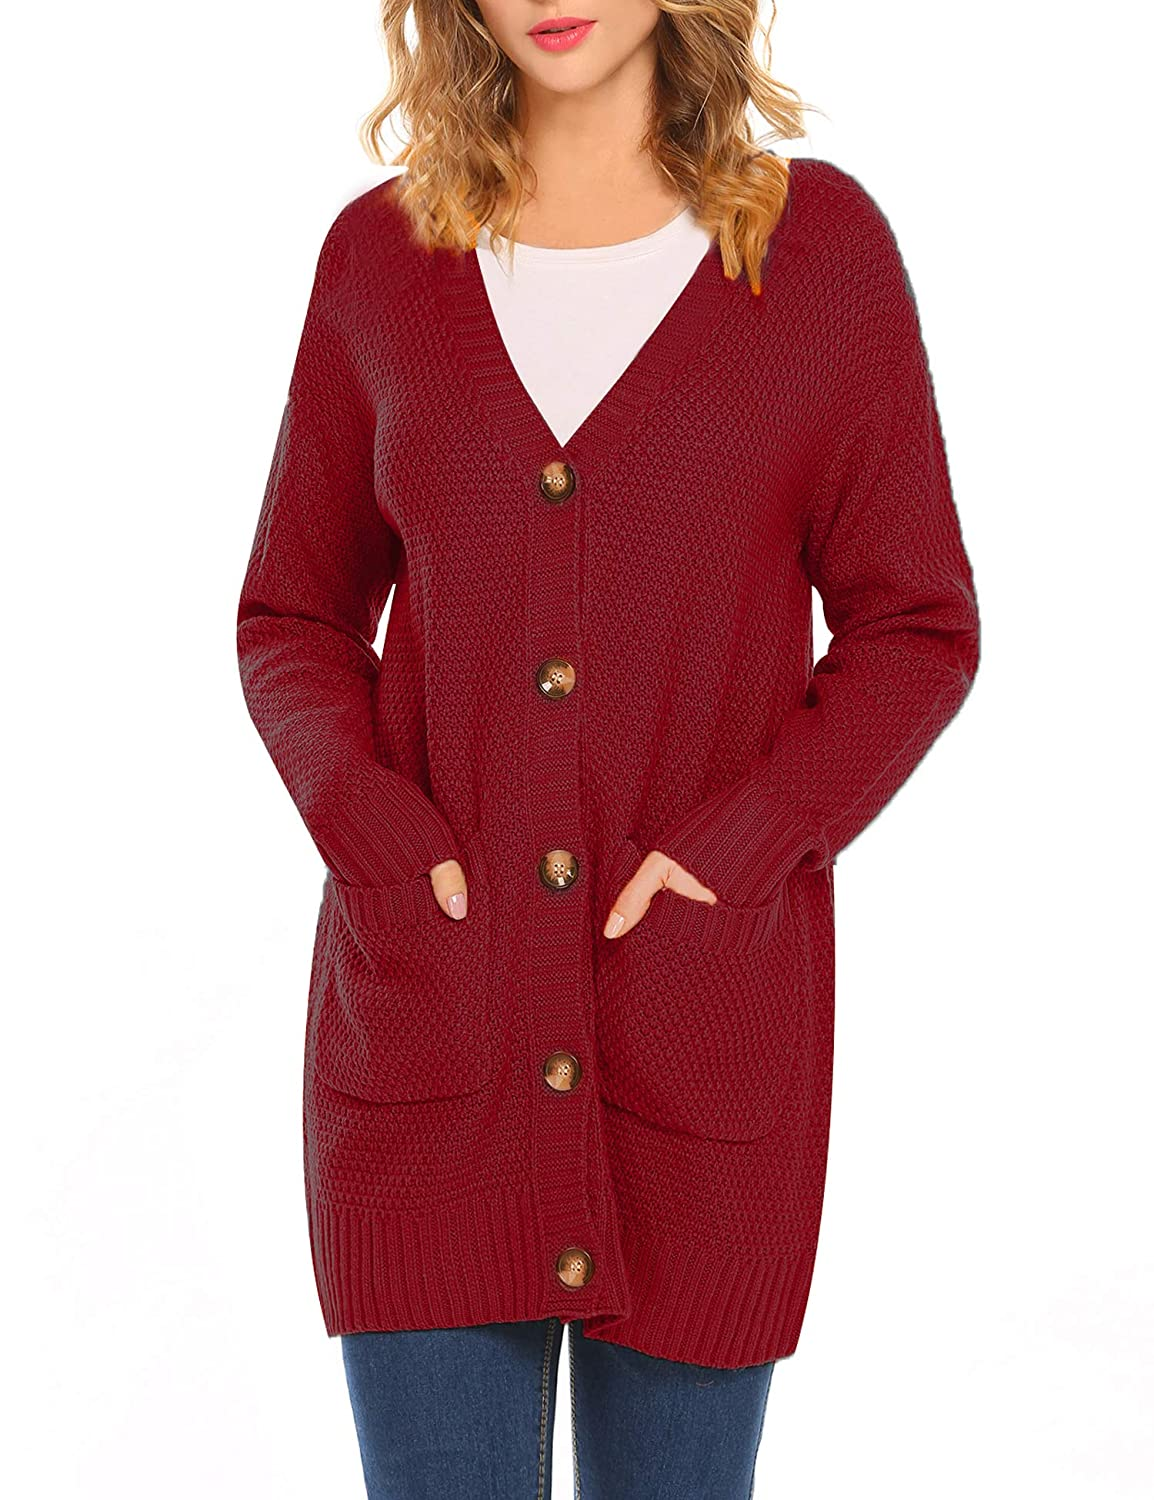 Top 10 wholesale Cable Knit Cardigan Pattern - Chinabrands.com 91533545c